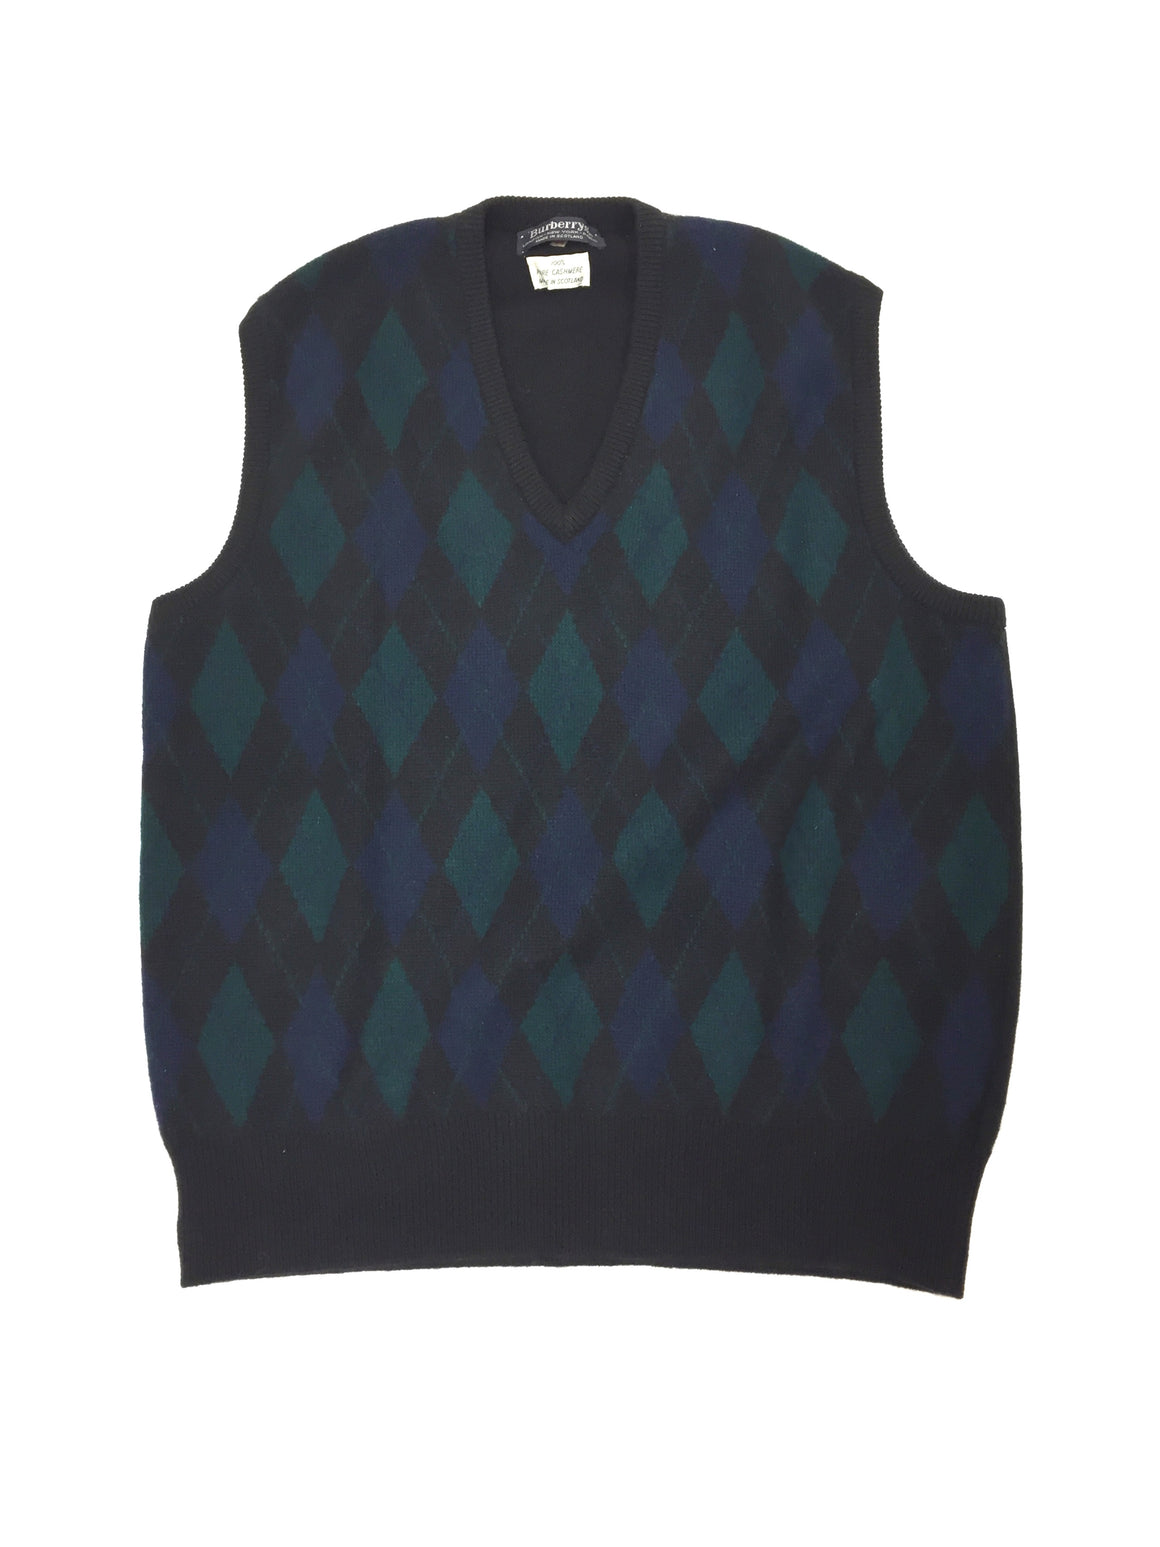 BURBERRY Vintage Black Cashmere Classic V-Neck Vest with Green & Blue Argyle Front Size: EU 44 / M